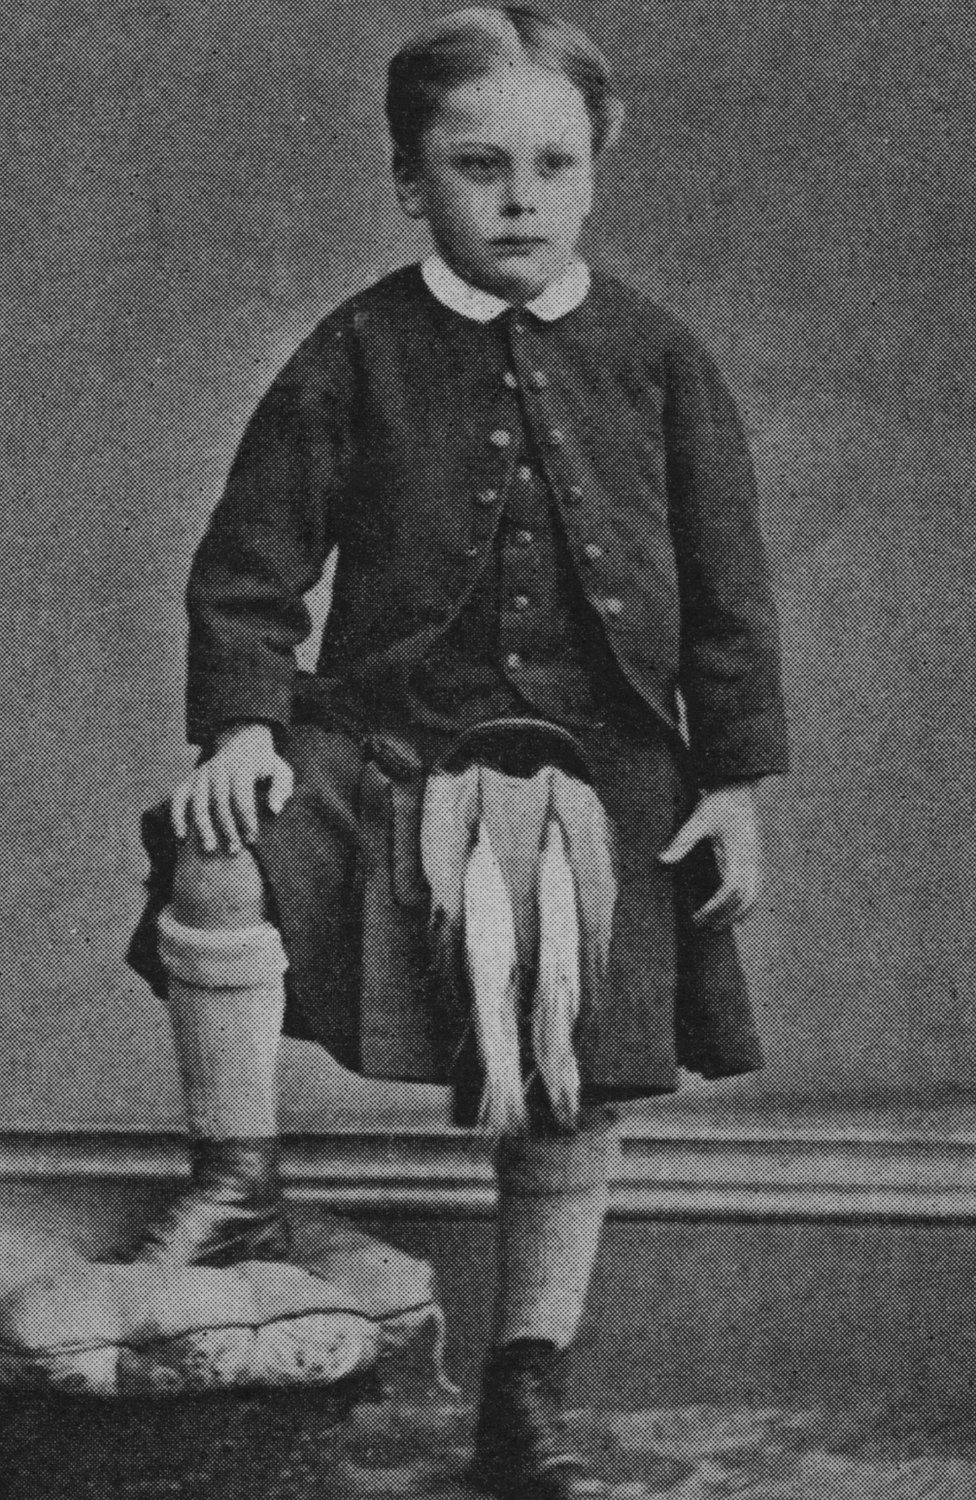 A childhood portrait of Douglas Haig in Edinburgh from about 1870